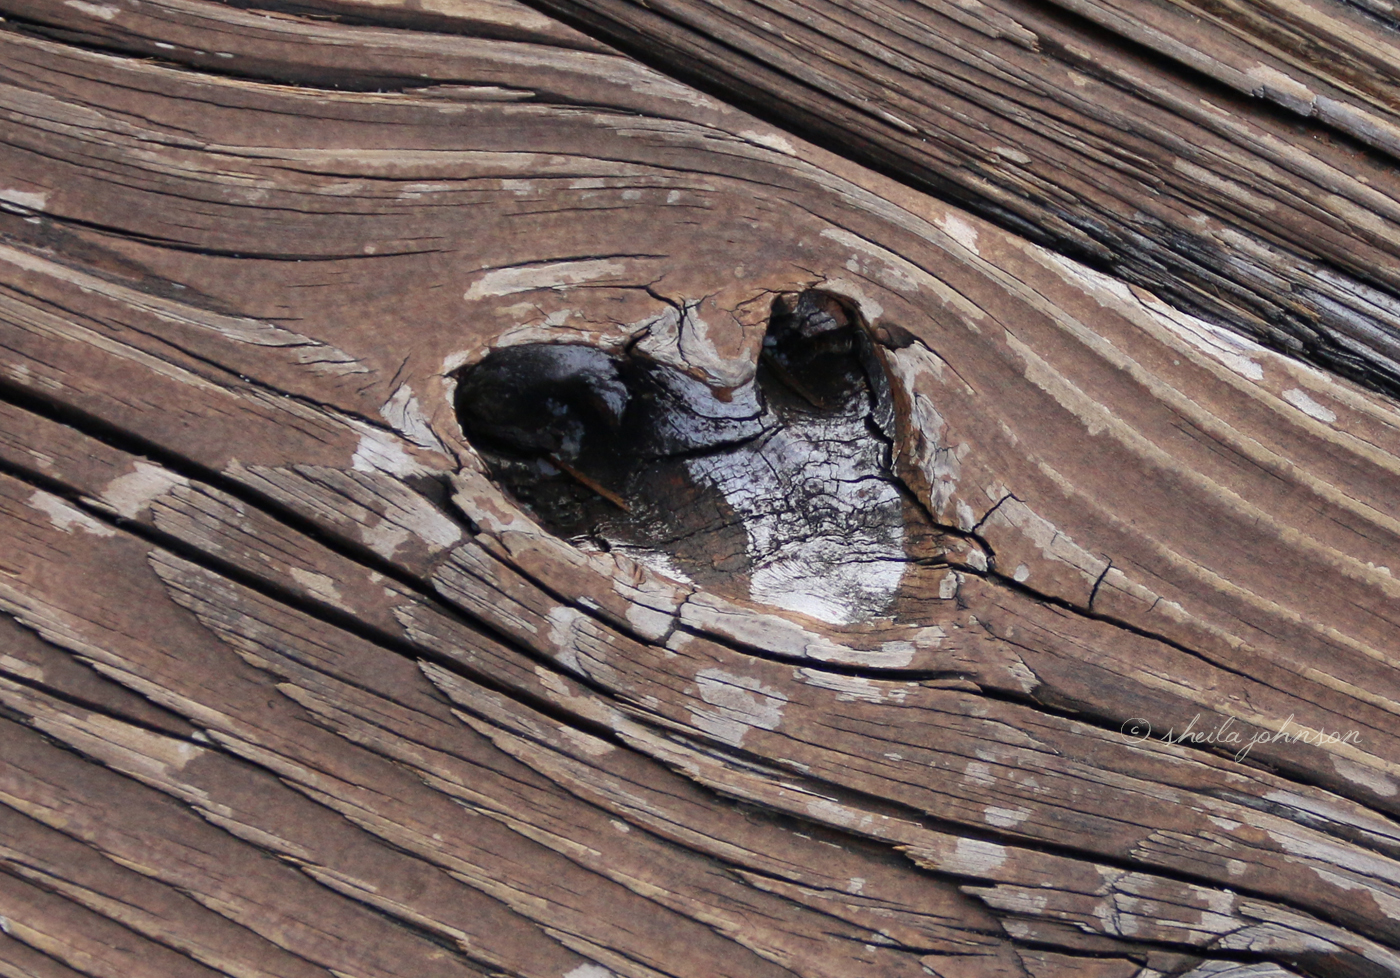 This Wood Has Worn Away, Bit By Bit, As Though Worn By The Love Of All Those Visiting The St. Lucie River At Kiplinger Preserve In Stuart, Martin County, Florida.